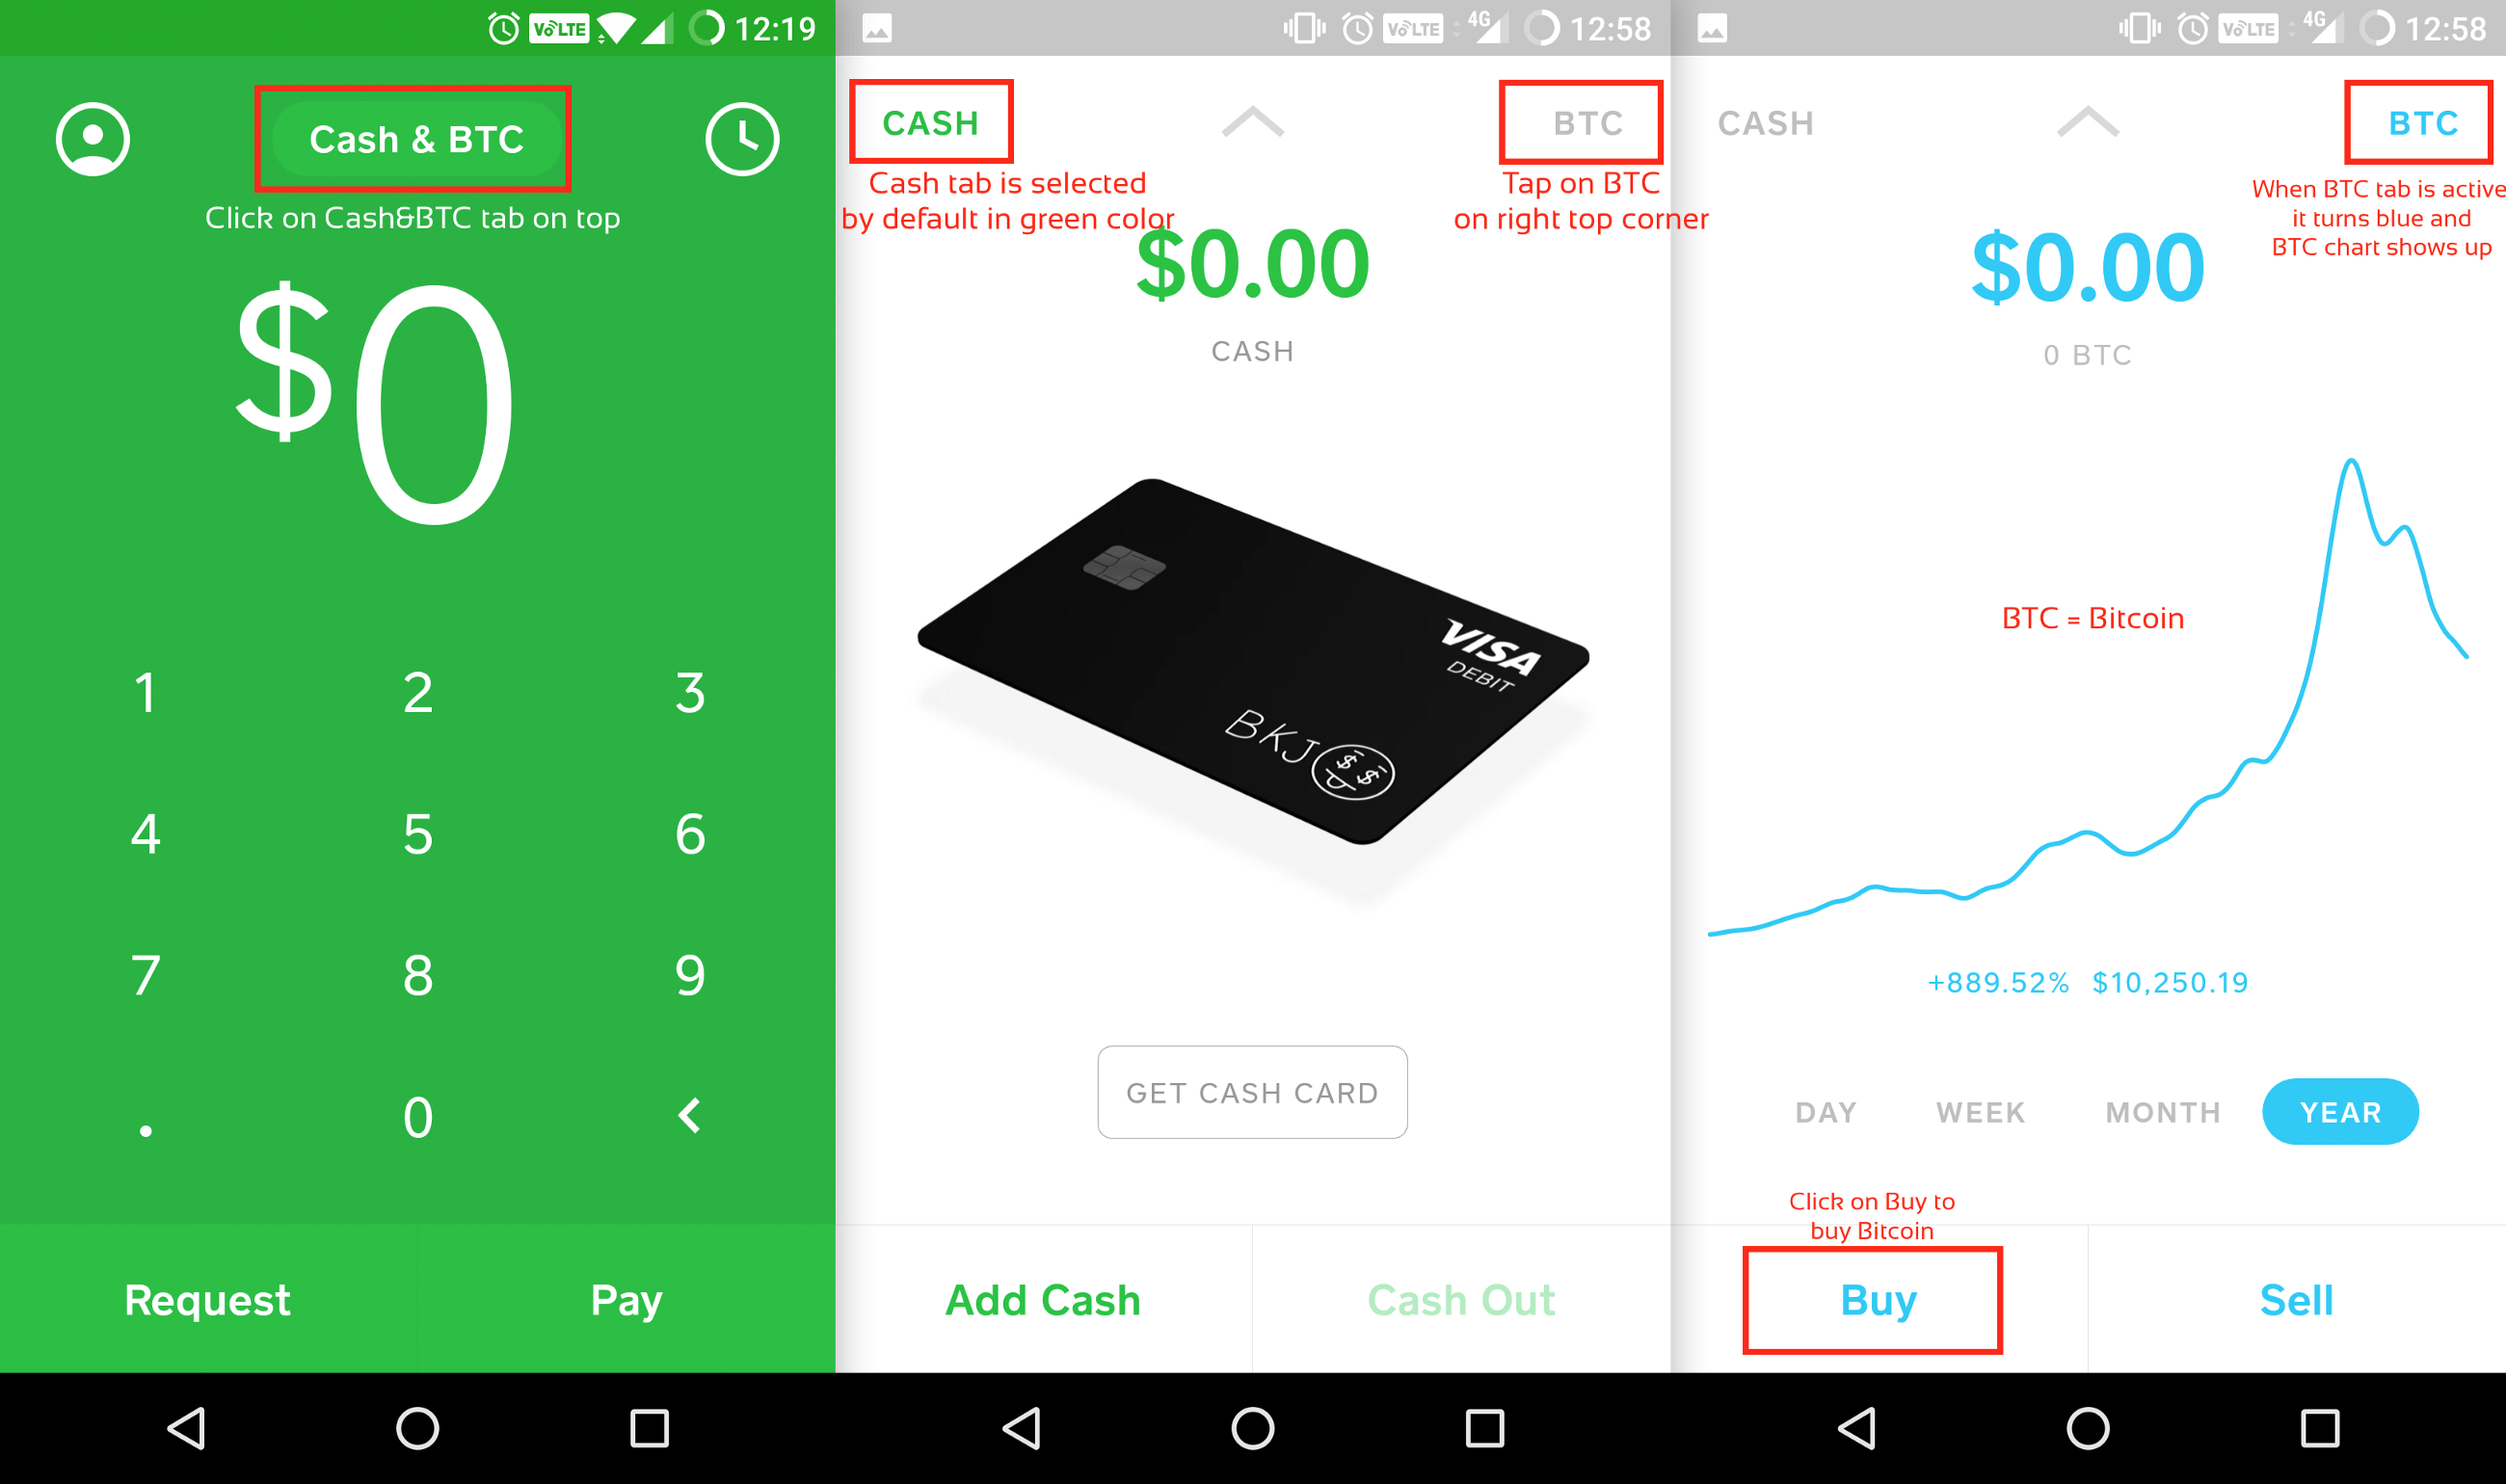 Can you receive bitcoin on cash app